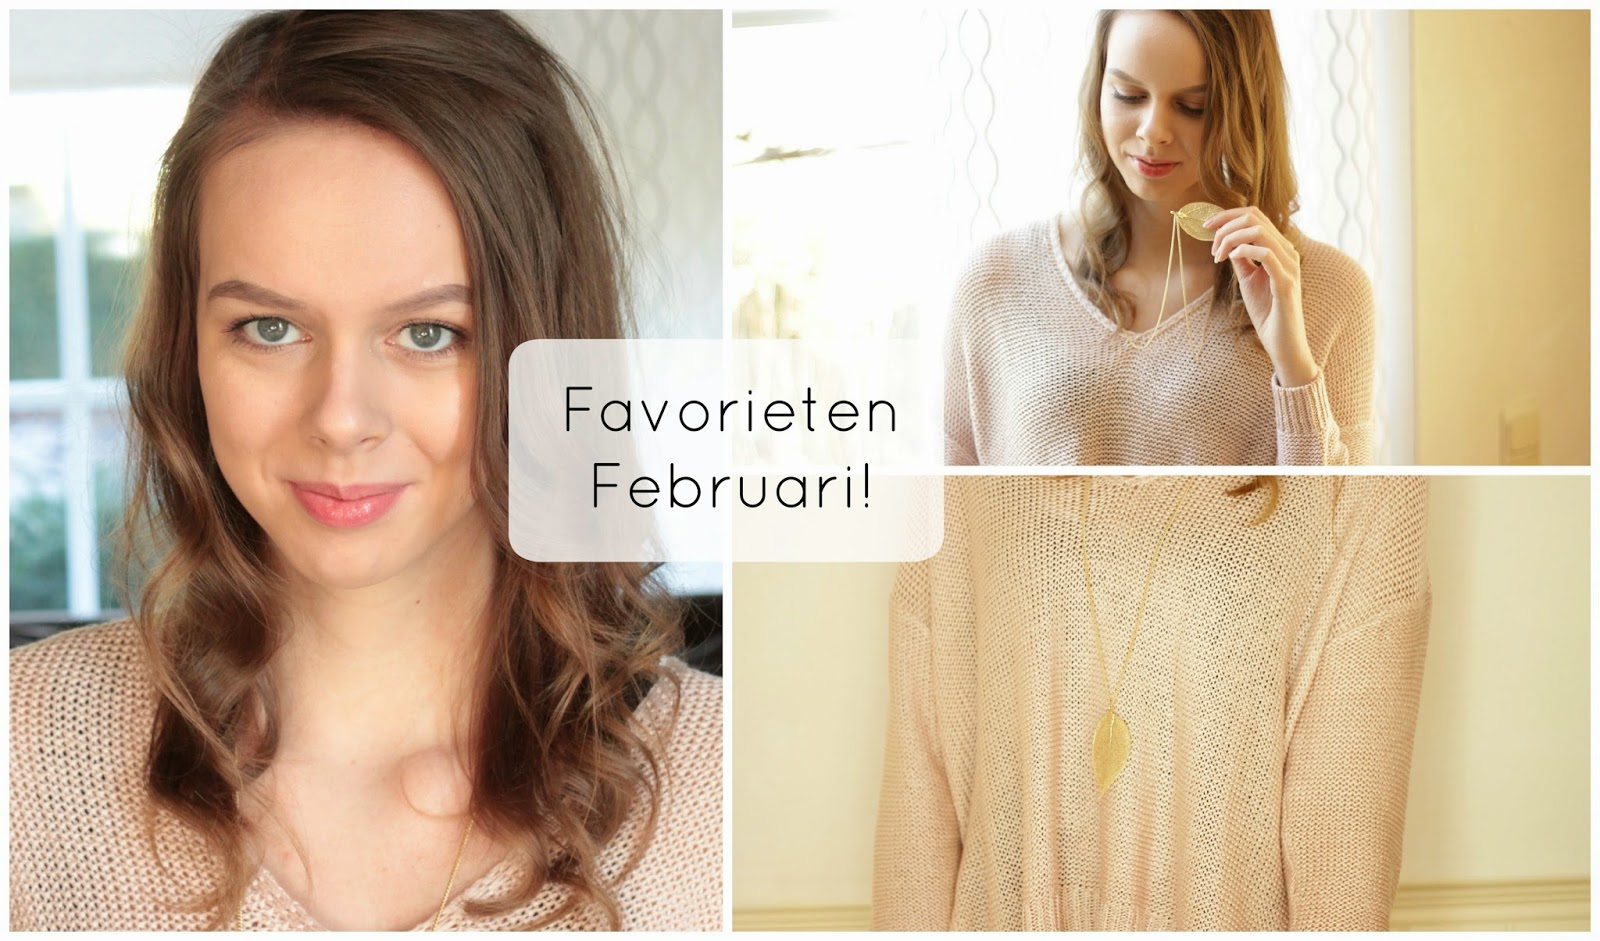 beauty fashion favorieten februari